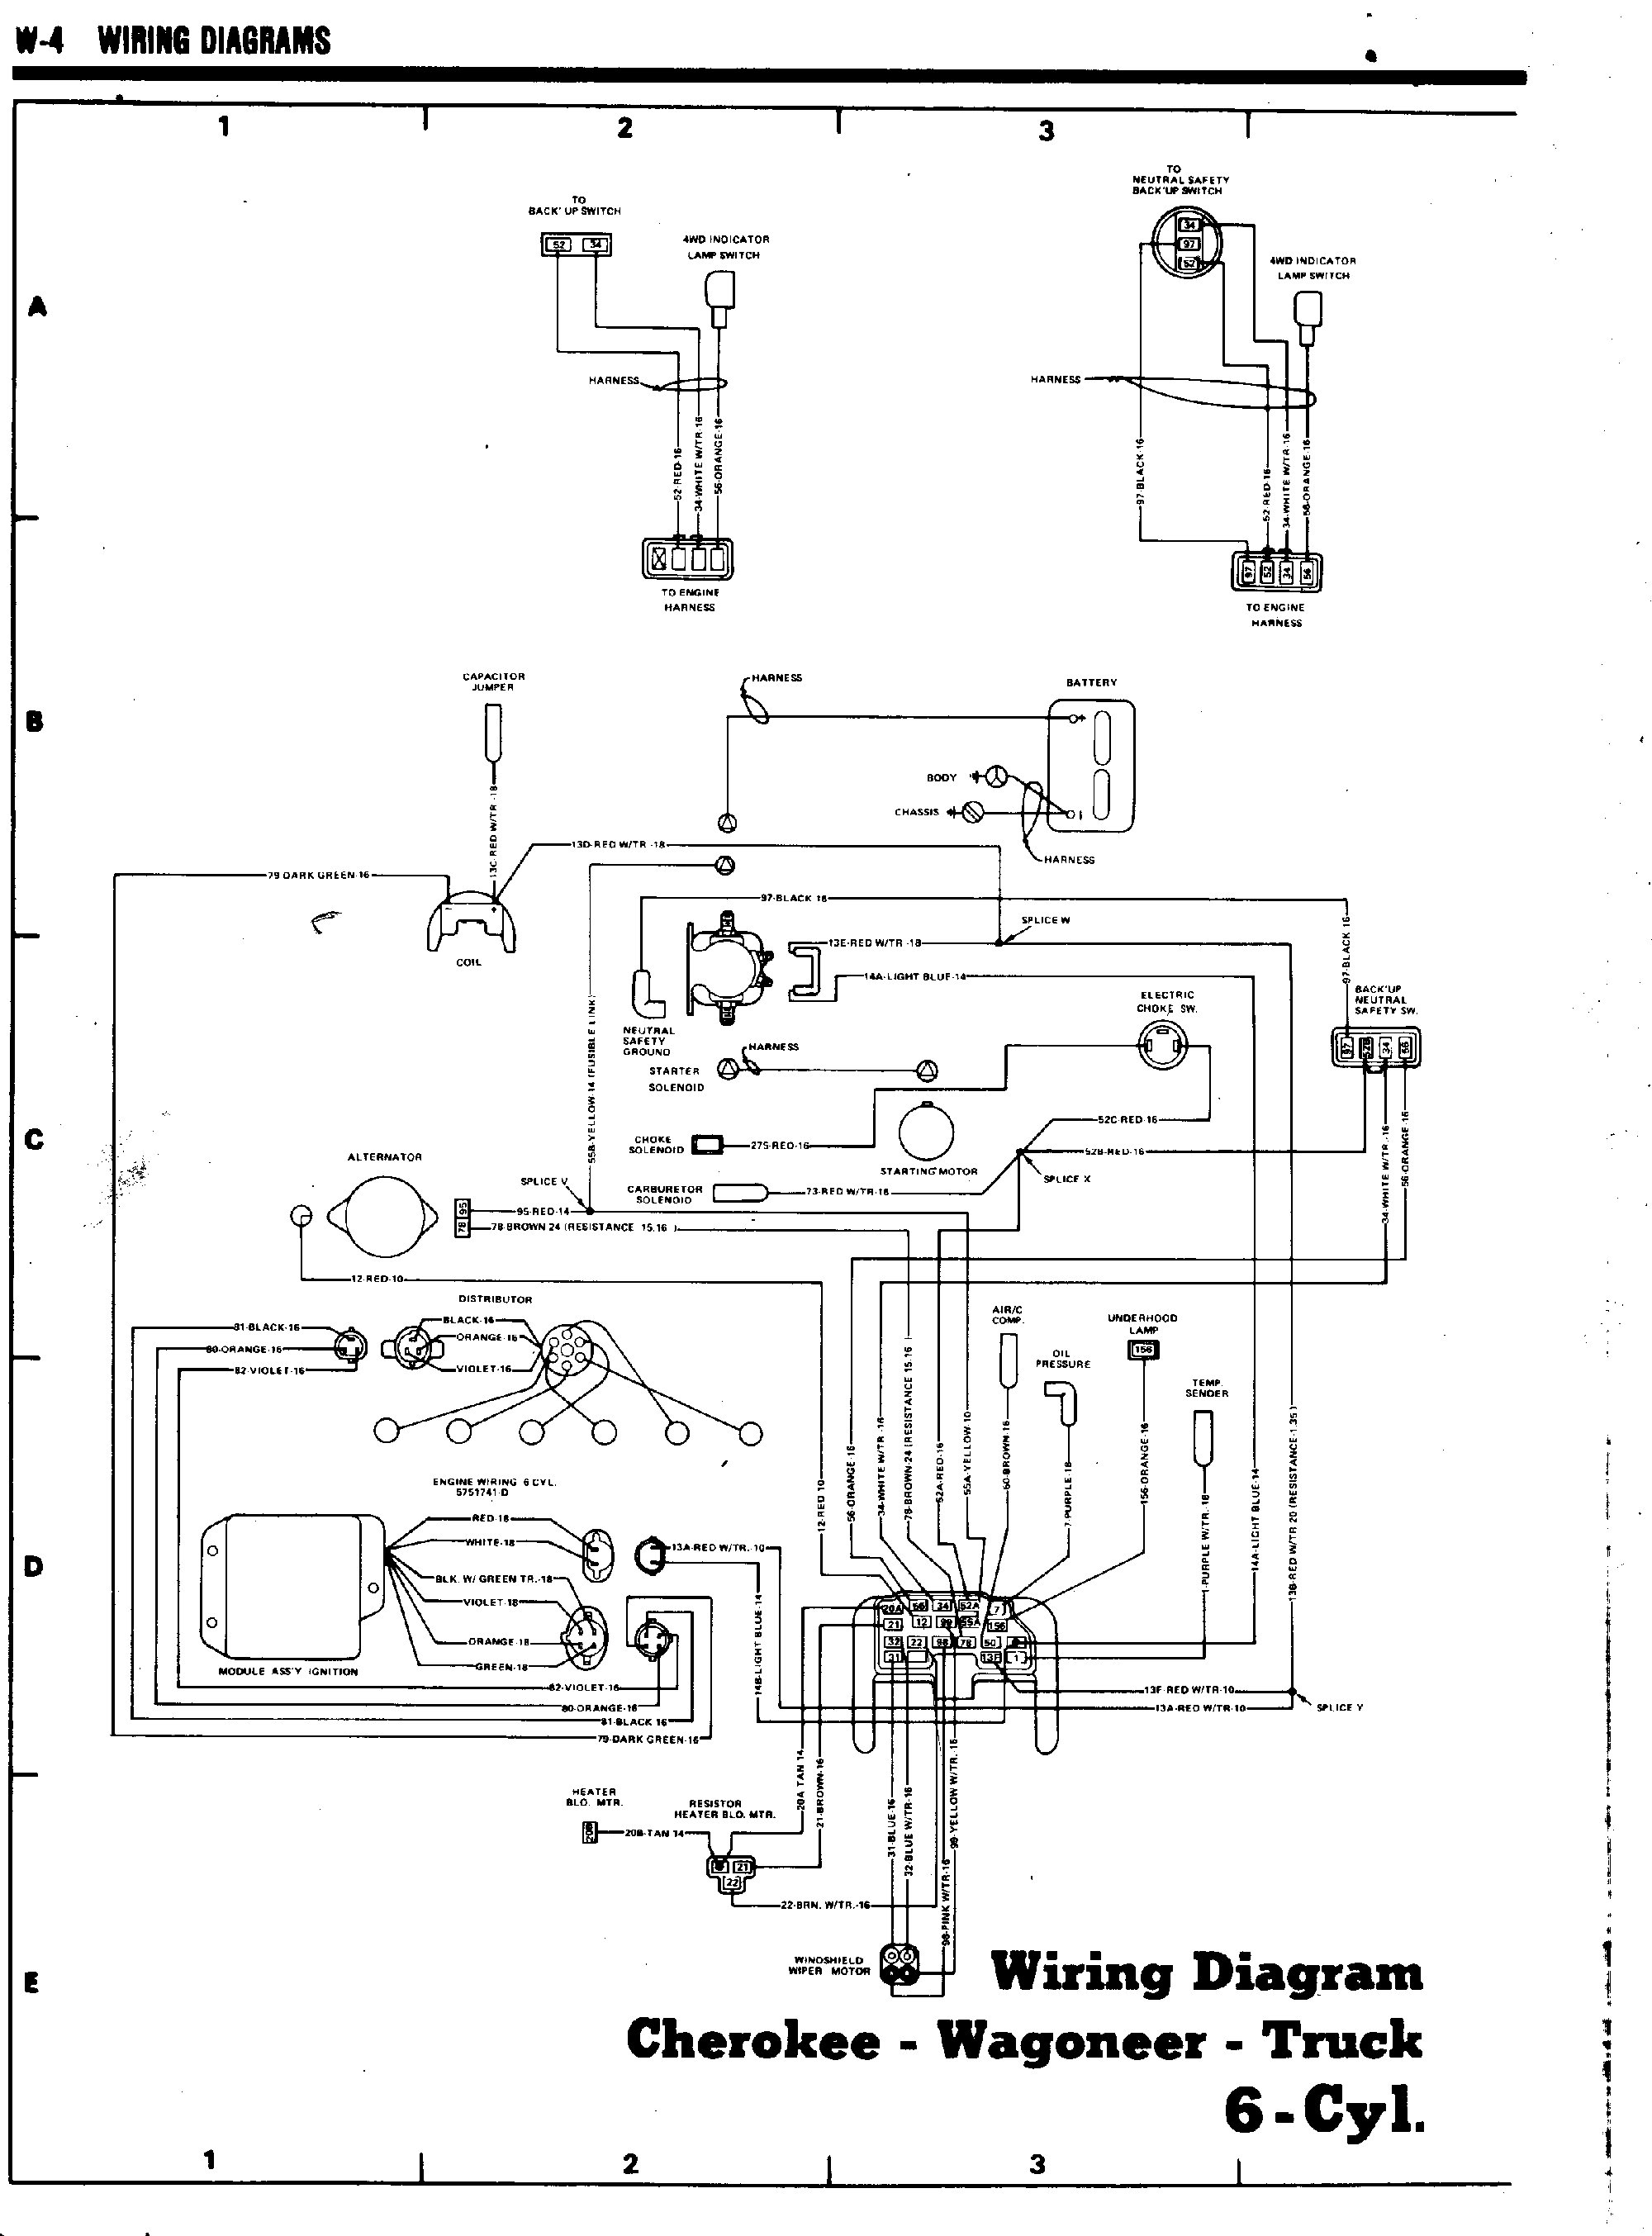 small resolution of 1985 jeep j 20 wiring diagram wiring diagram advance 1985 jeep j 20 wiring diagram